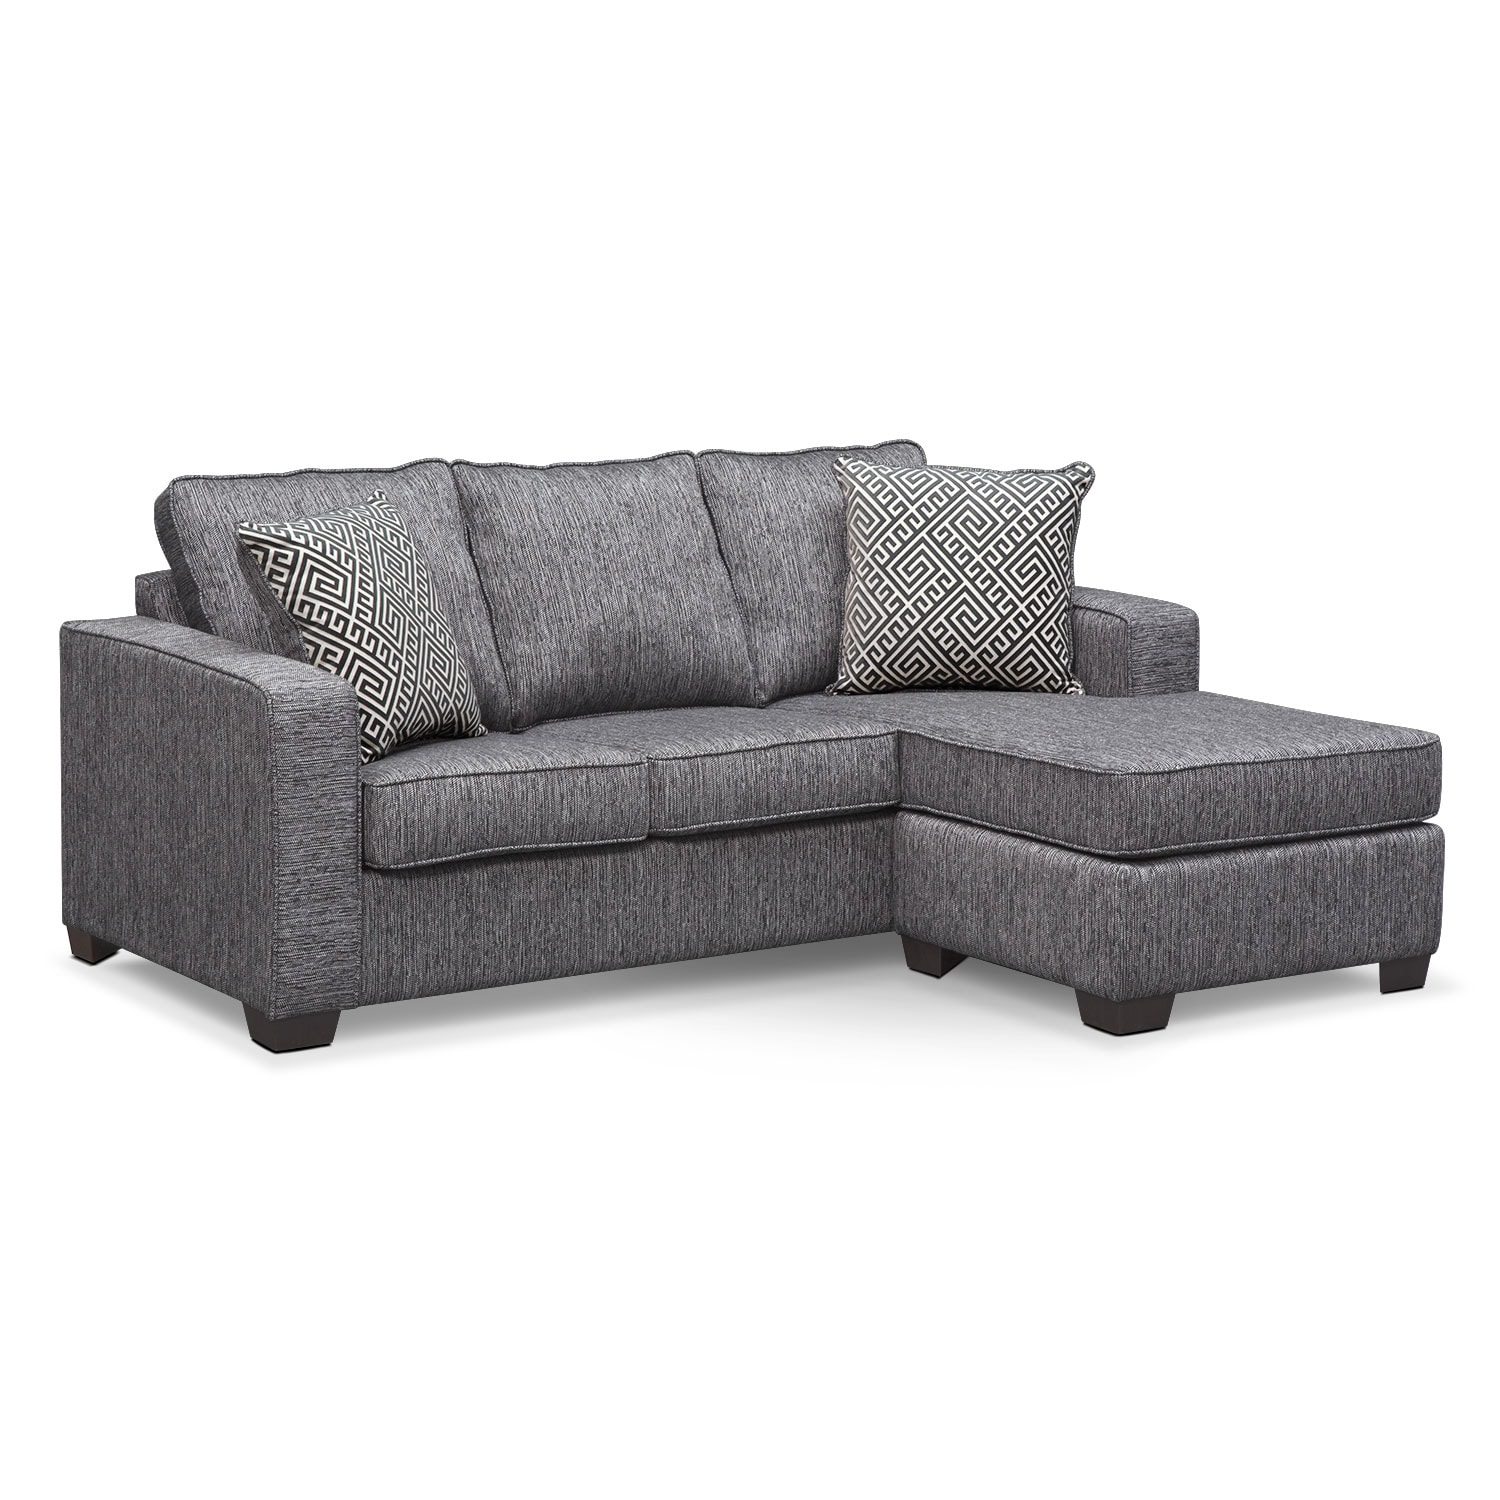 Sterling Innerspring Sleeper Sofa With Chaise